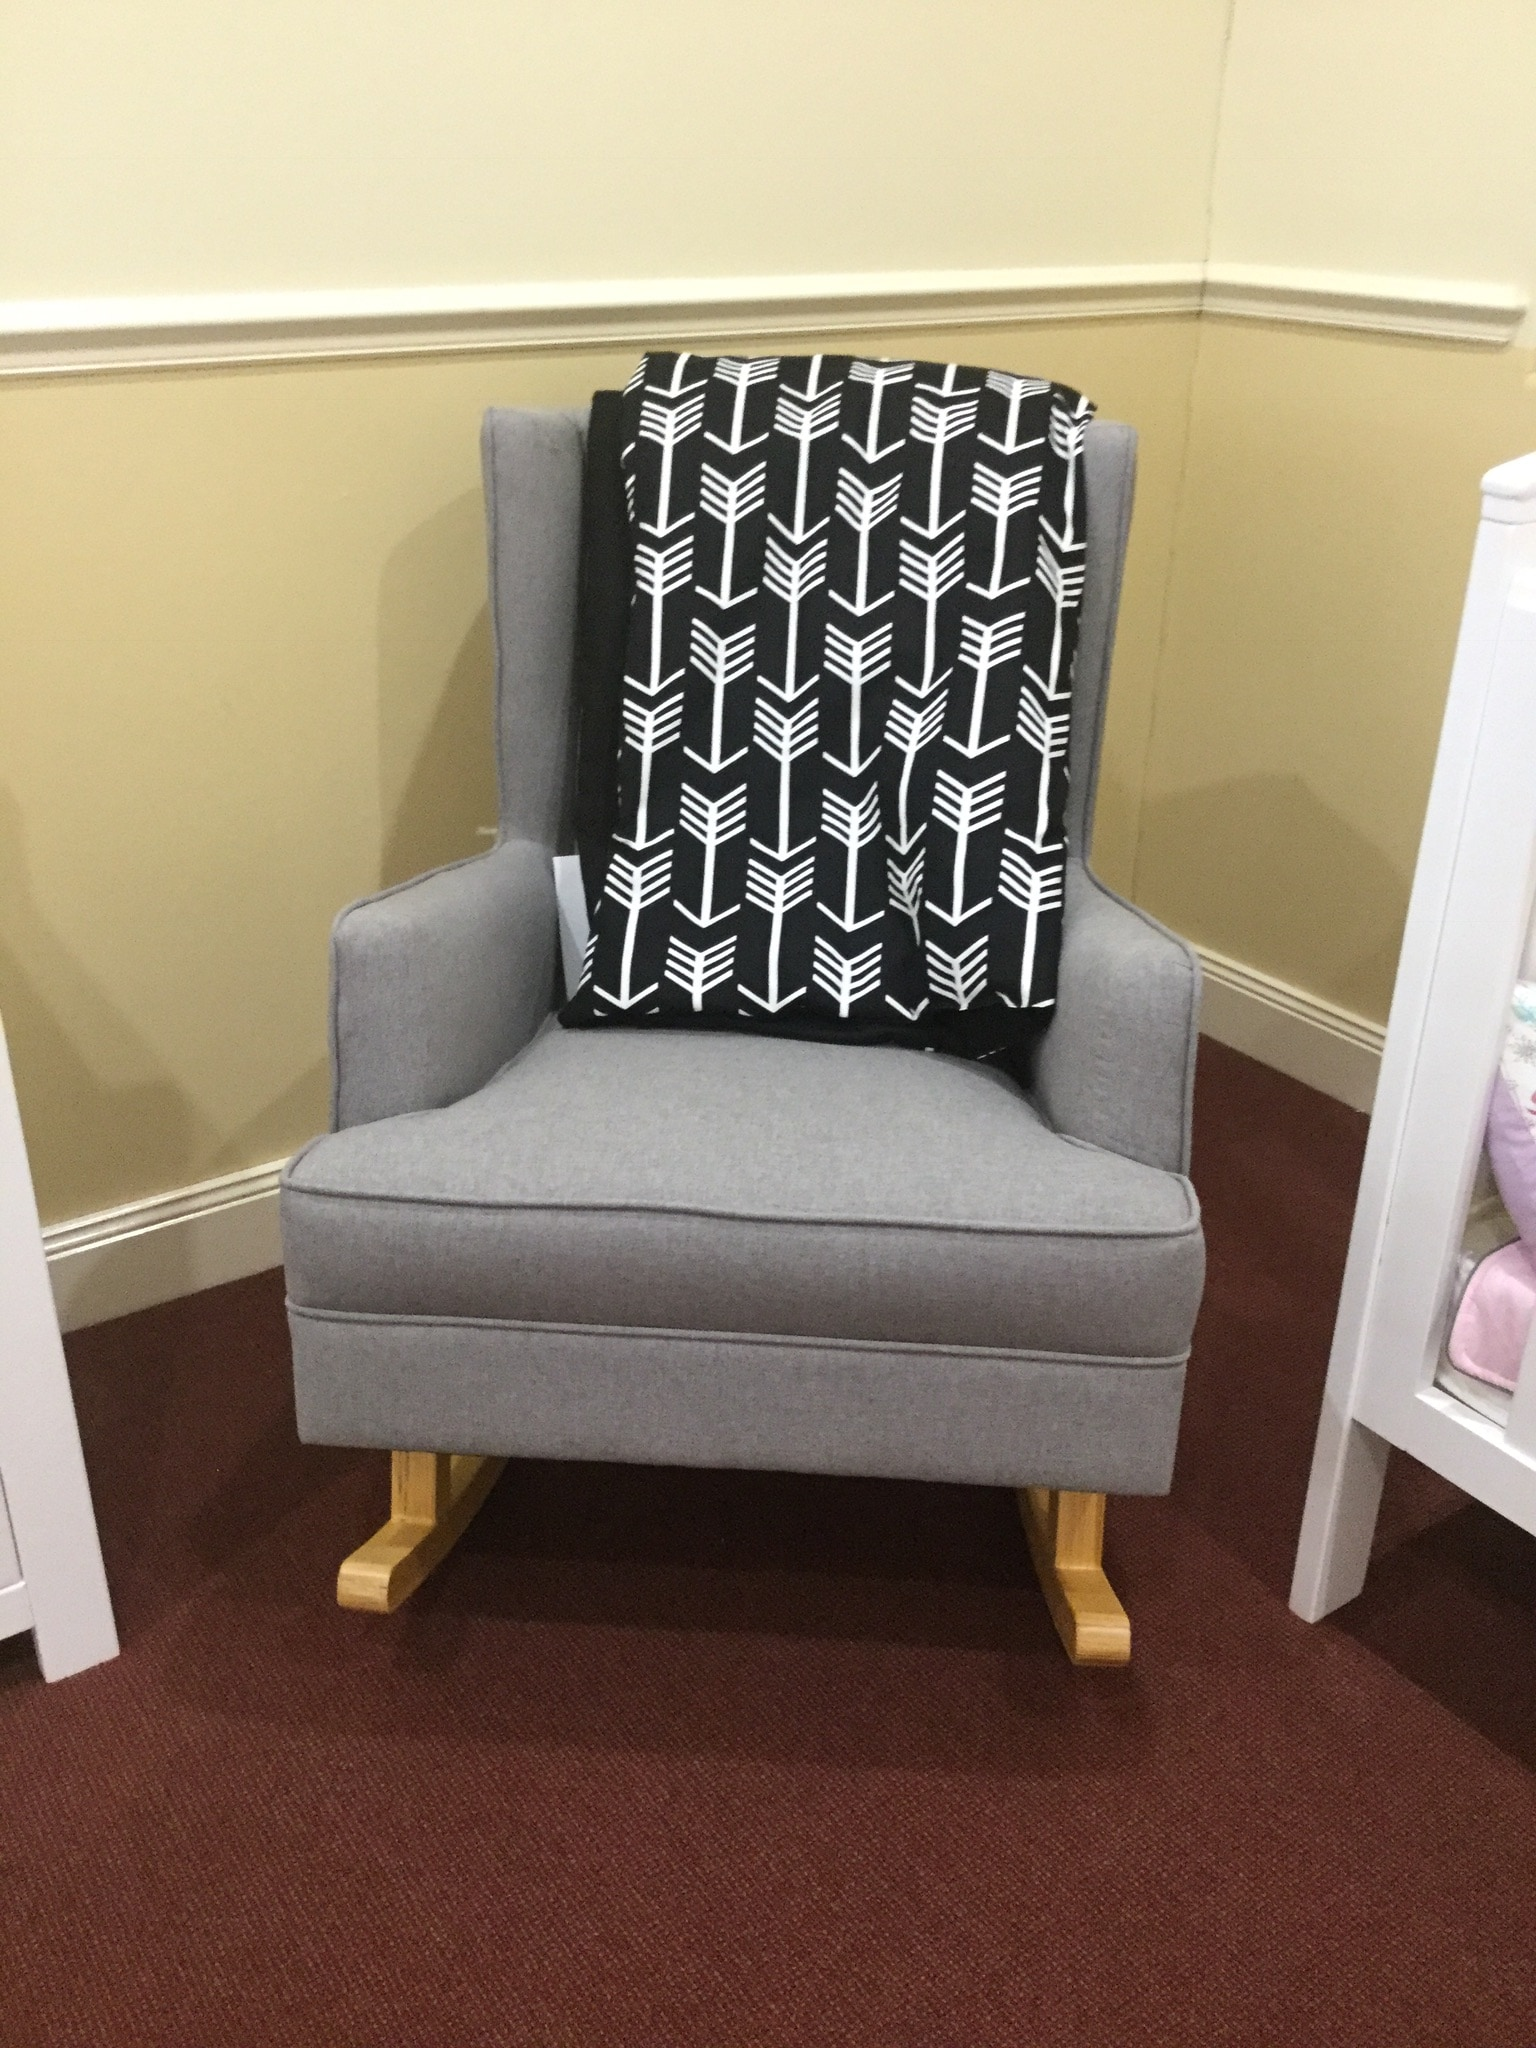 The Baby Shop Plus - Baby Prams, Furniture & Accessories - Unit 1 77 ...